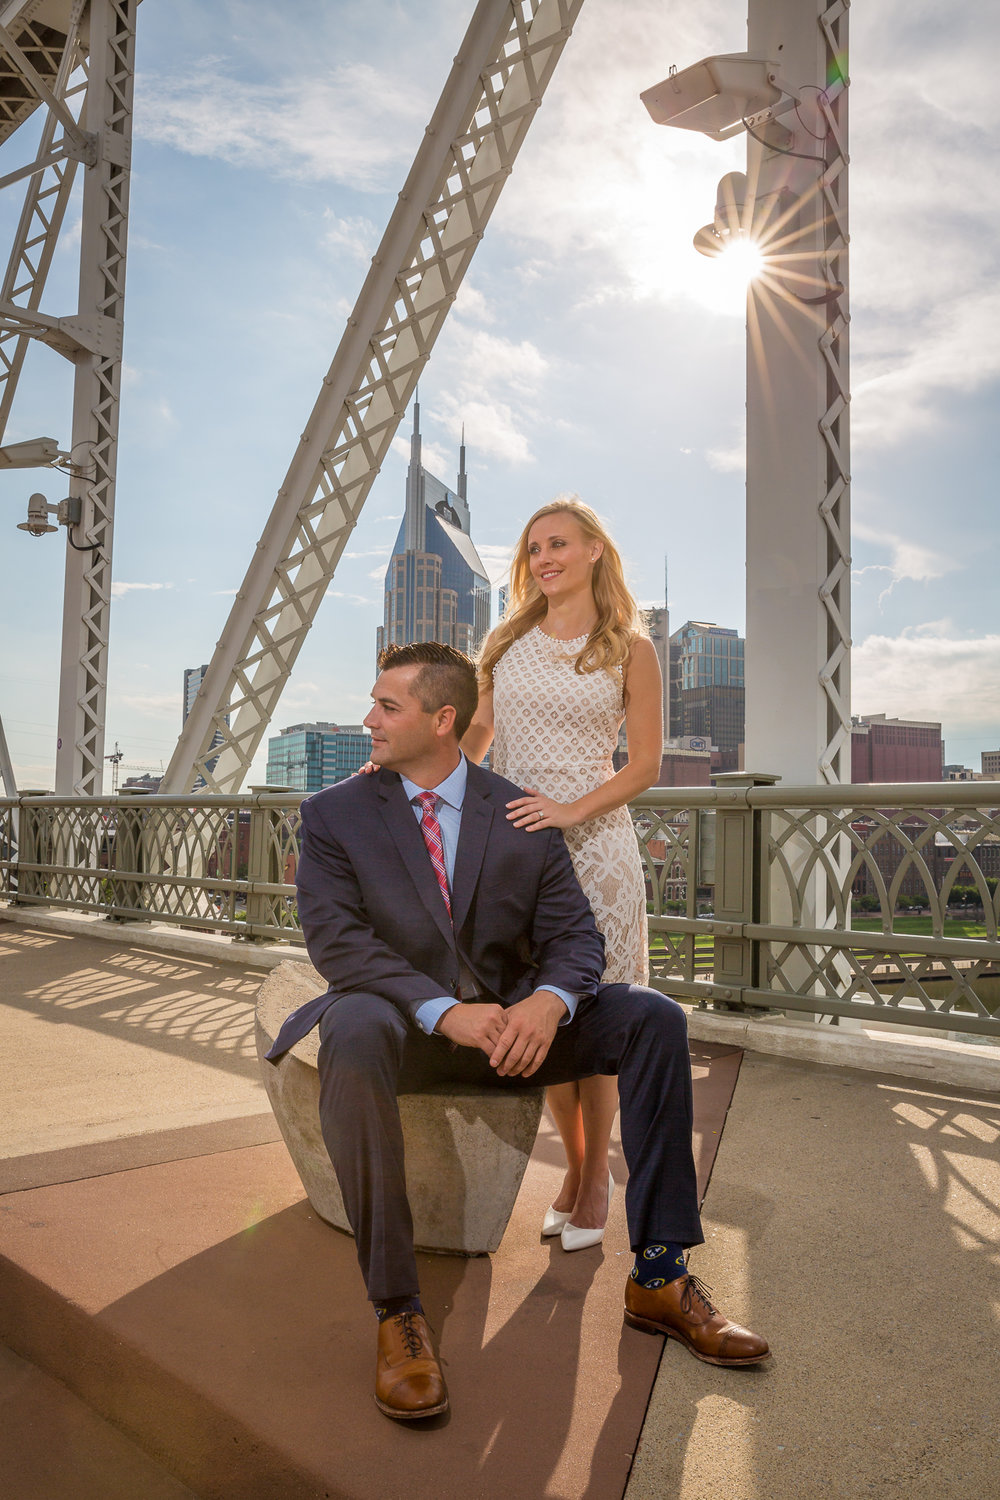 Nashville Photography Group wedding photographers-1-18.jpg